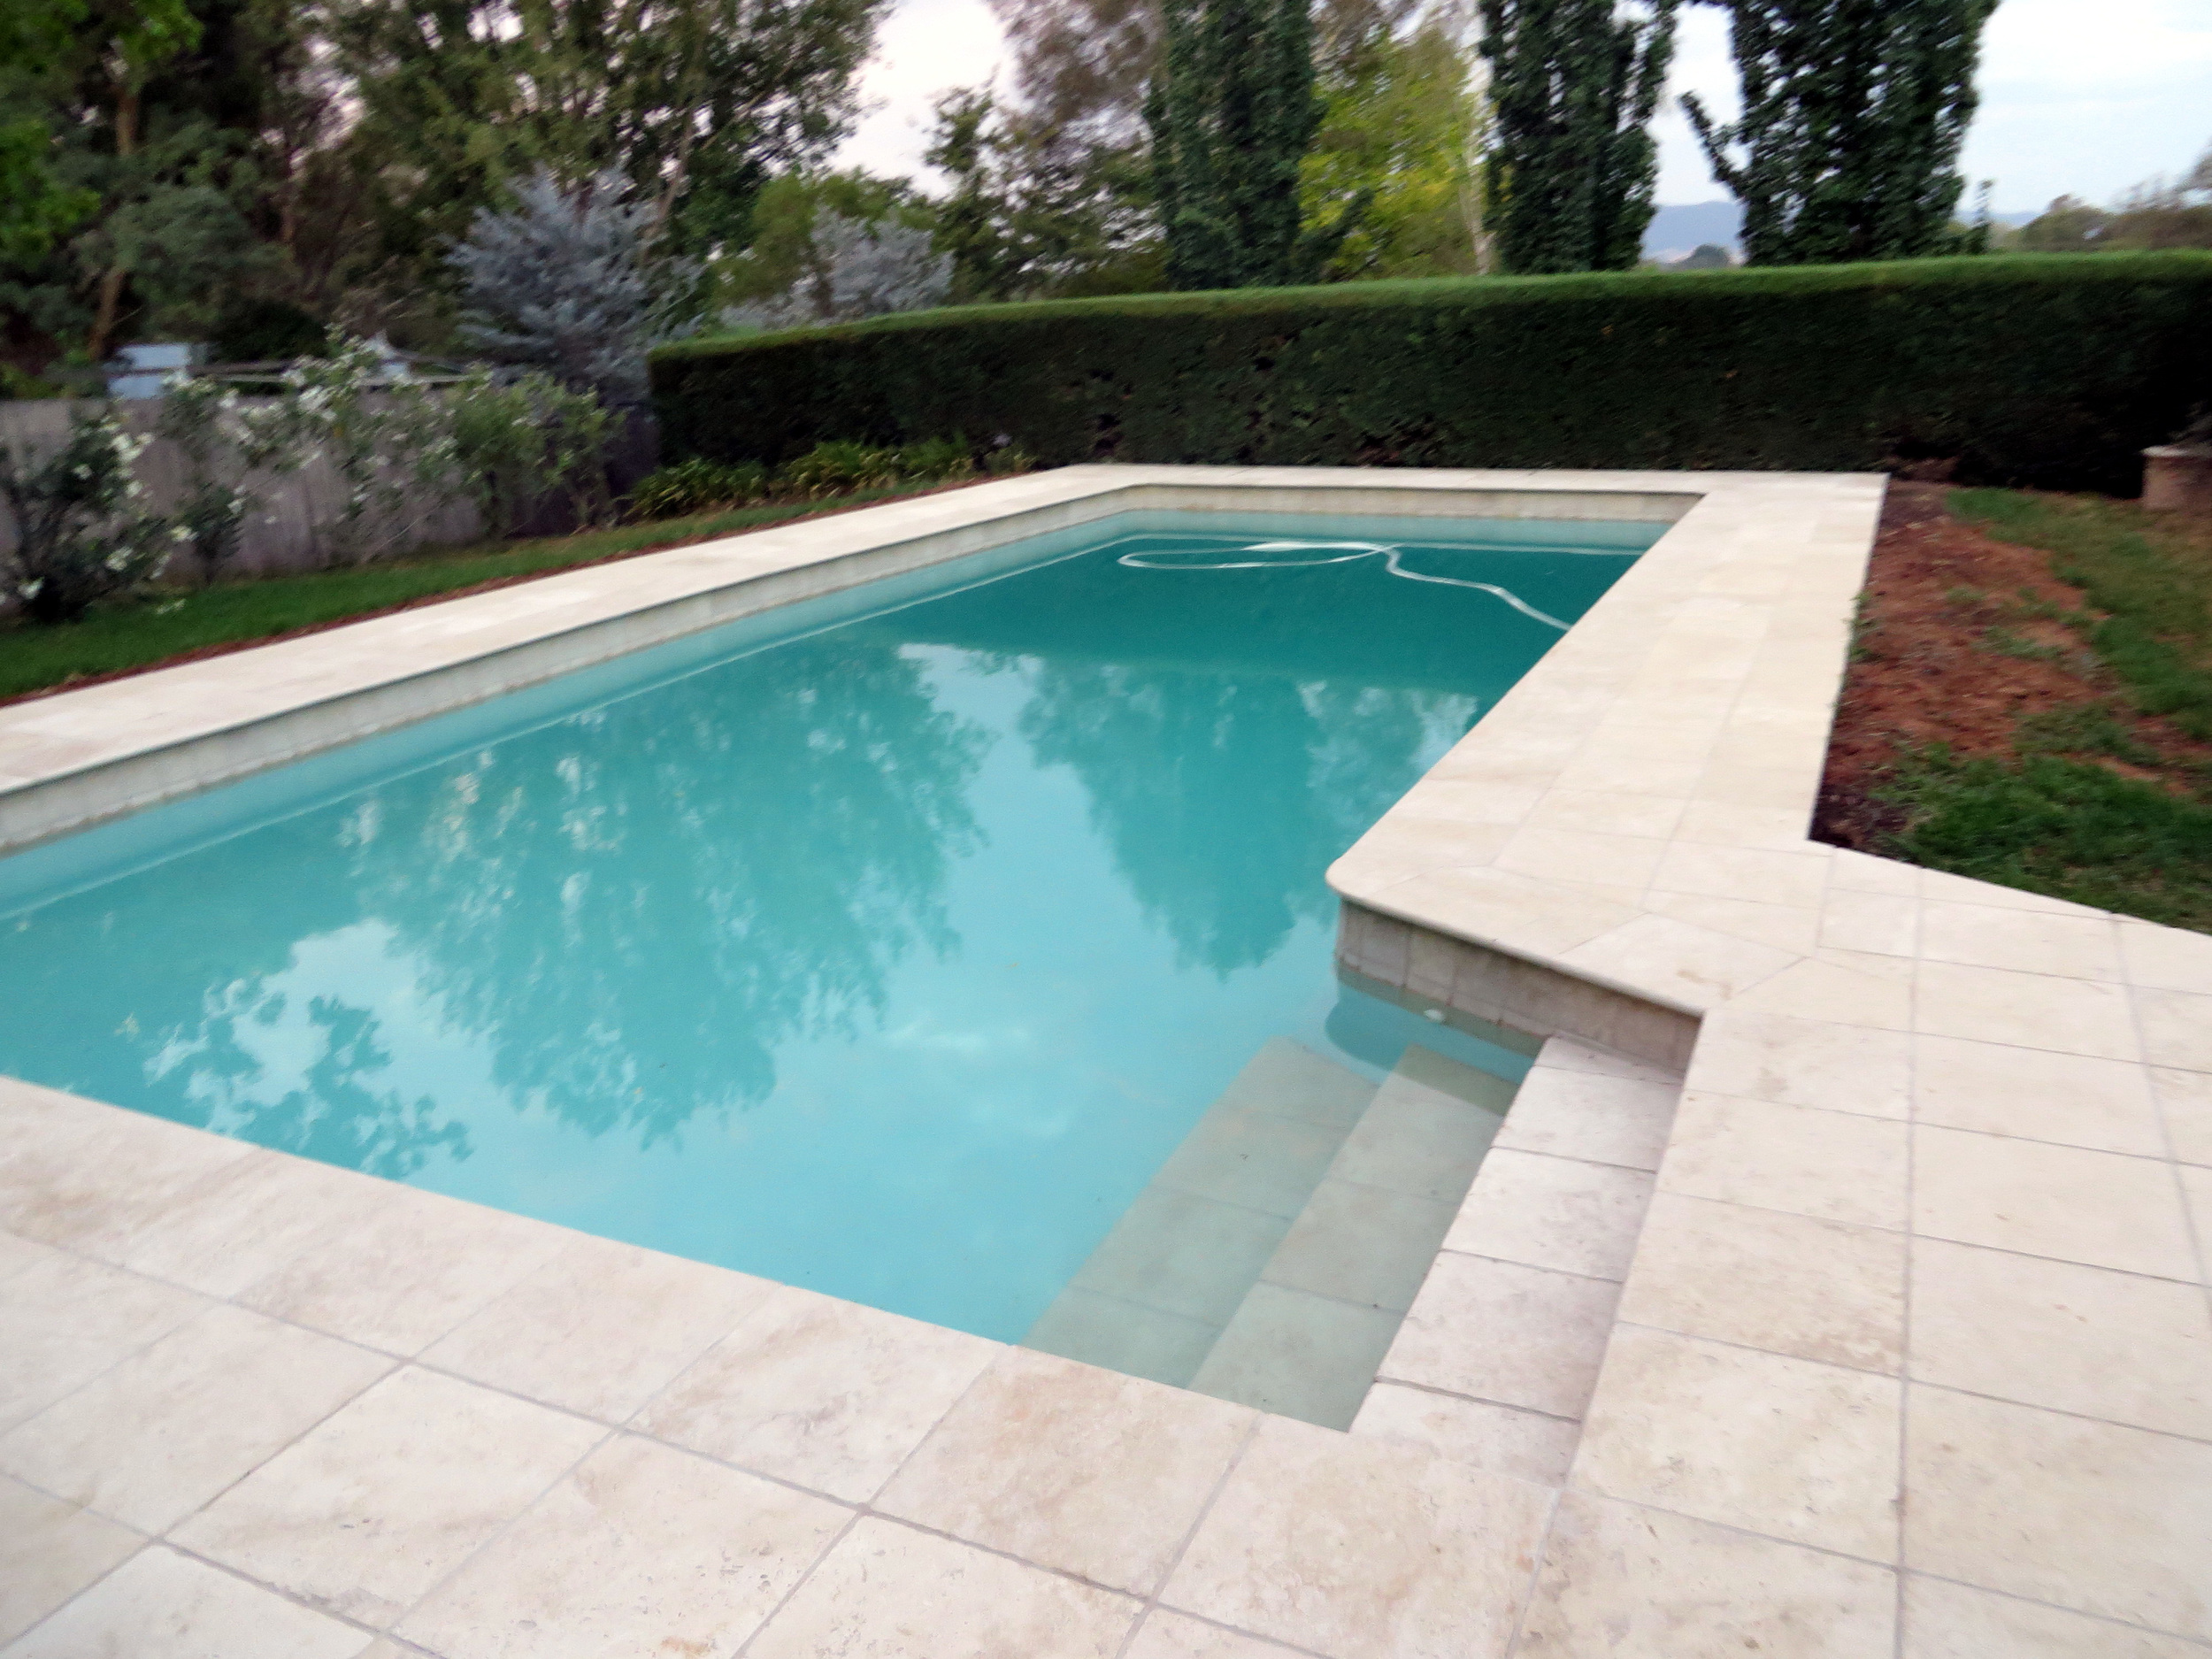 Classico-travertine-pool2-mudgee.jpg